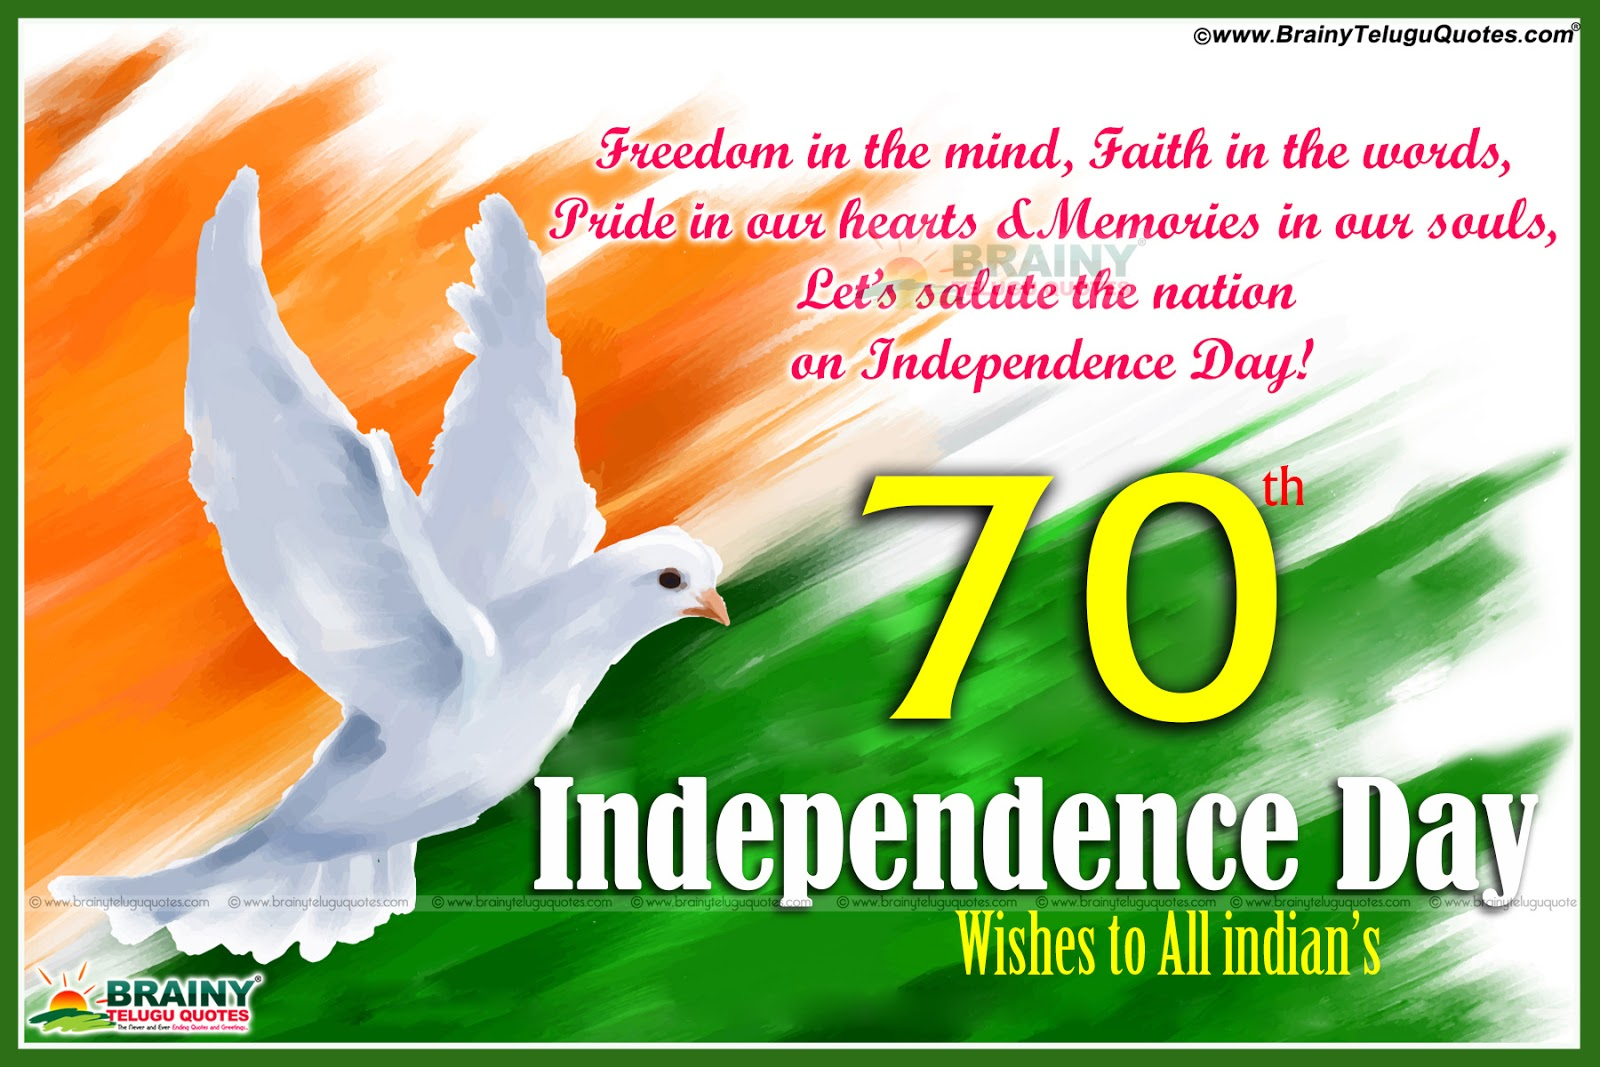 happy 70th independence day quotes greetings wishes images